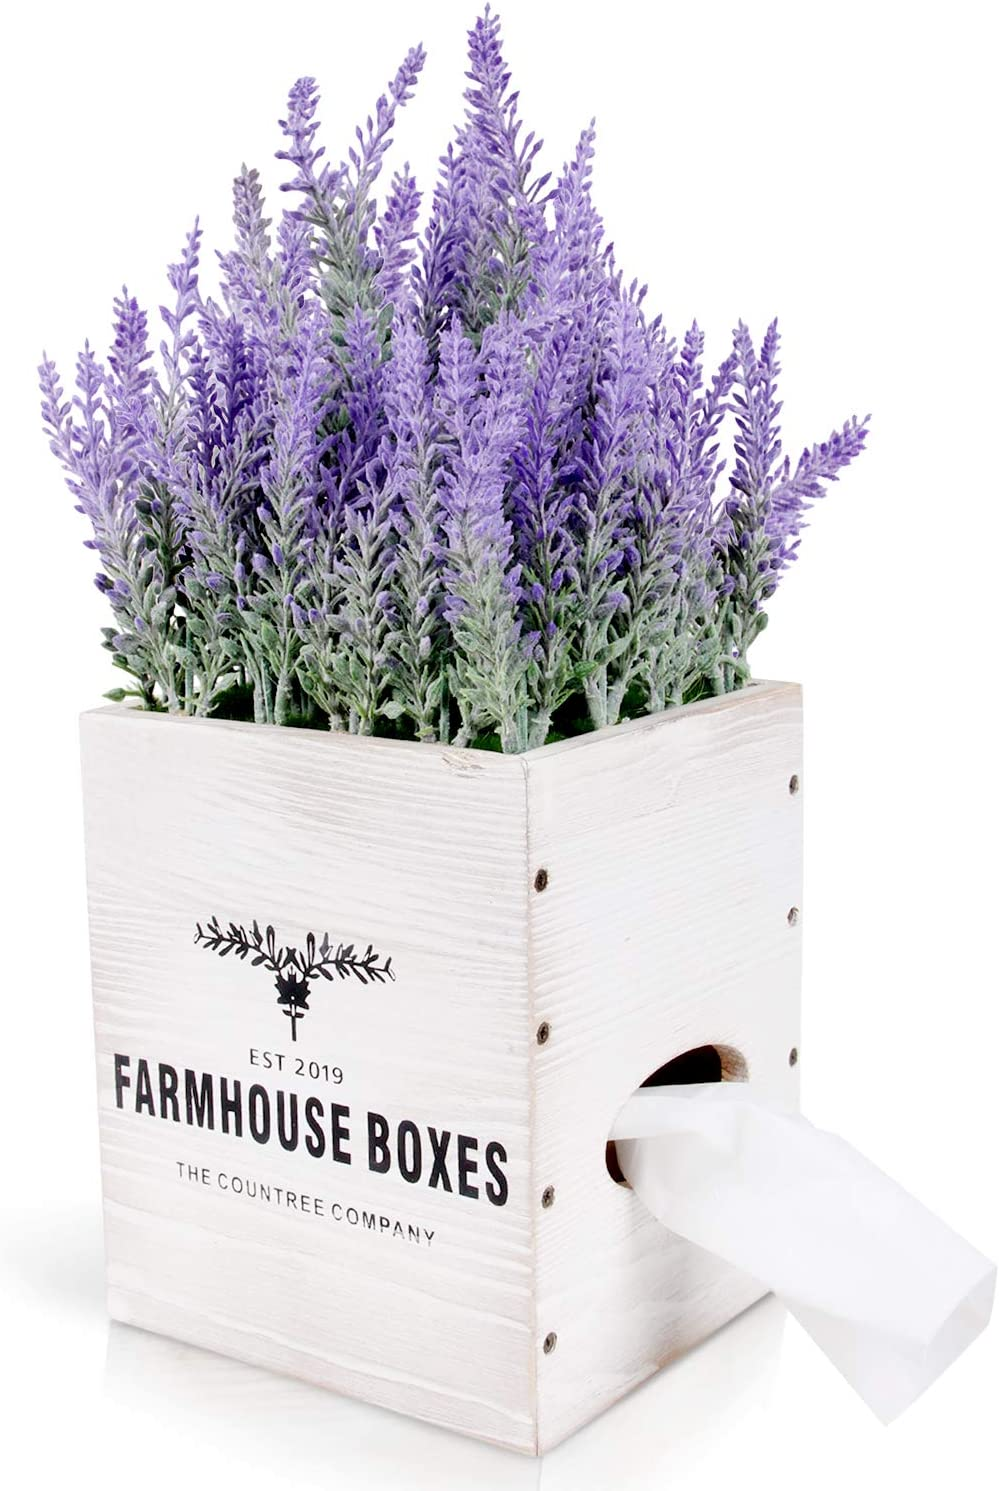 Countree Rustic Tissue Box Cover - Farmhouse Tissue Box Holder with Faux Lavender Arrangement - Decorative Wooden House Tissues Cube Square Dispenser with Artificial Flower Plant for Boho Home Decor